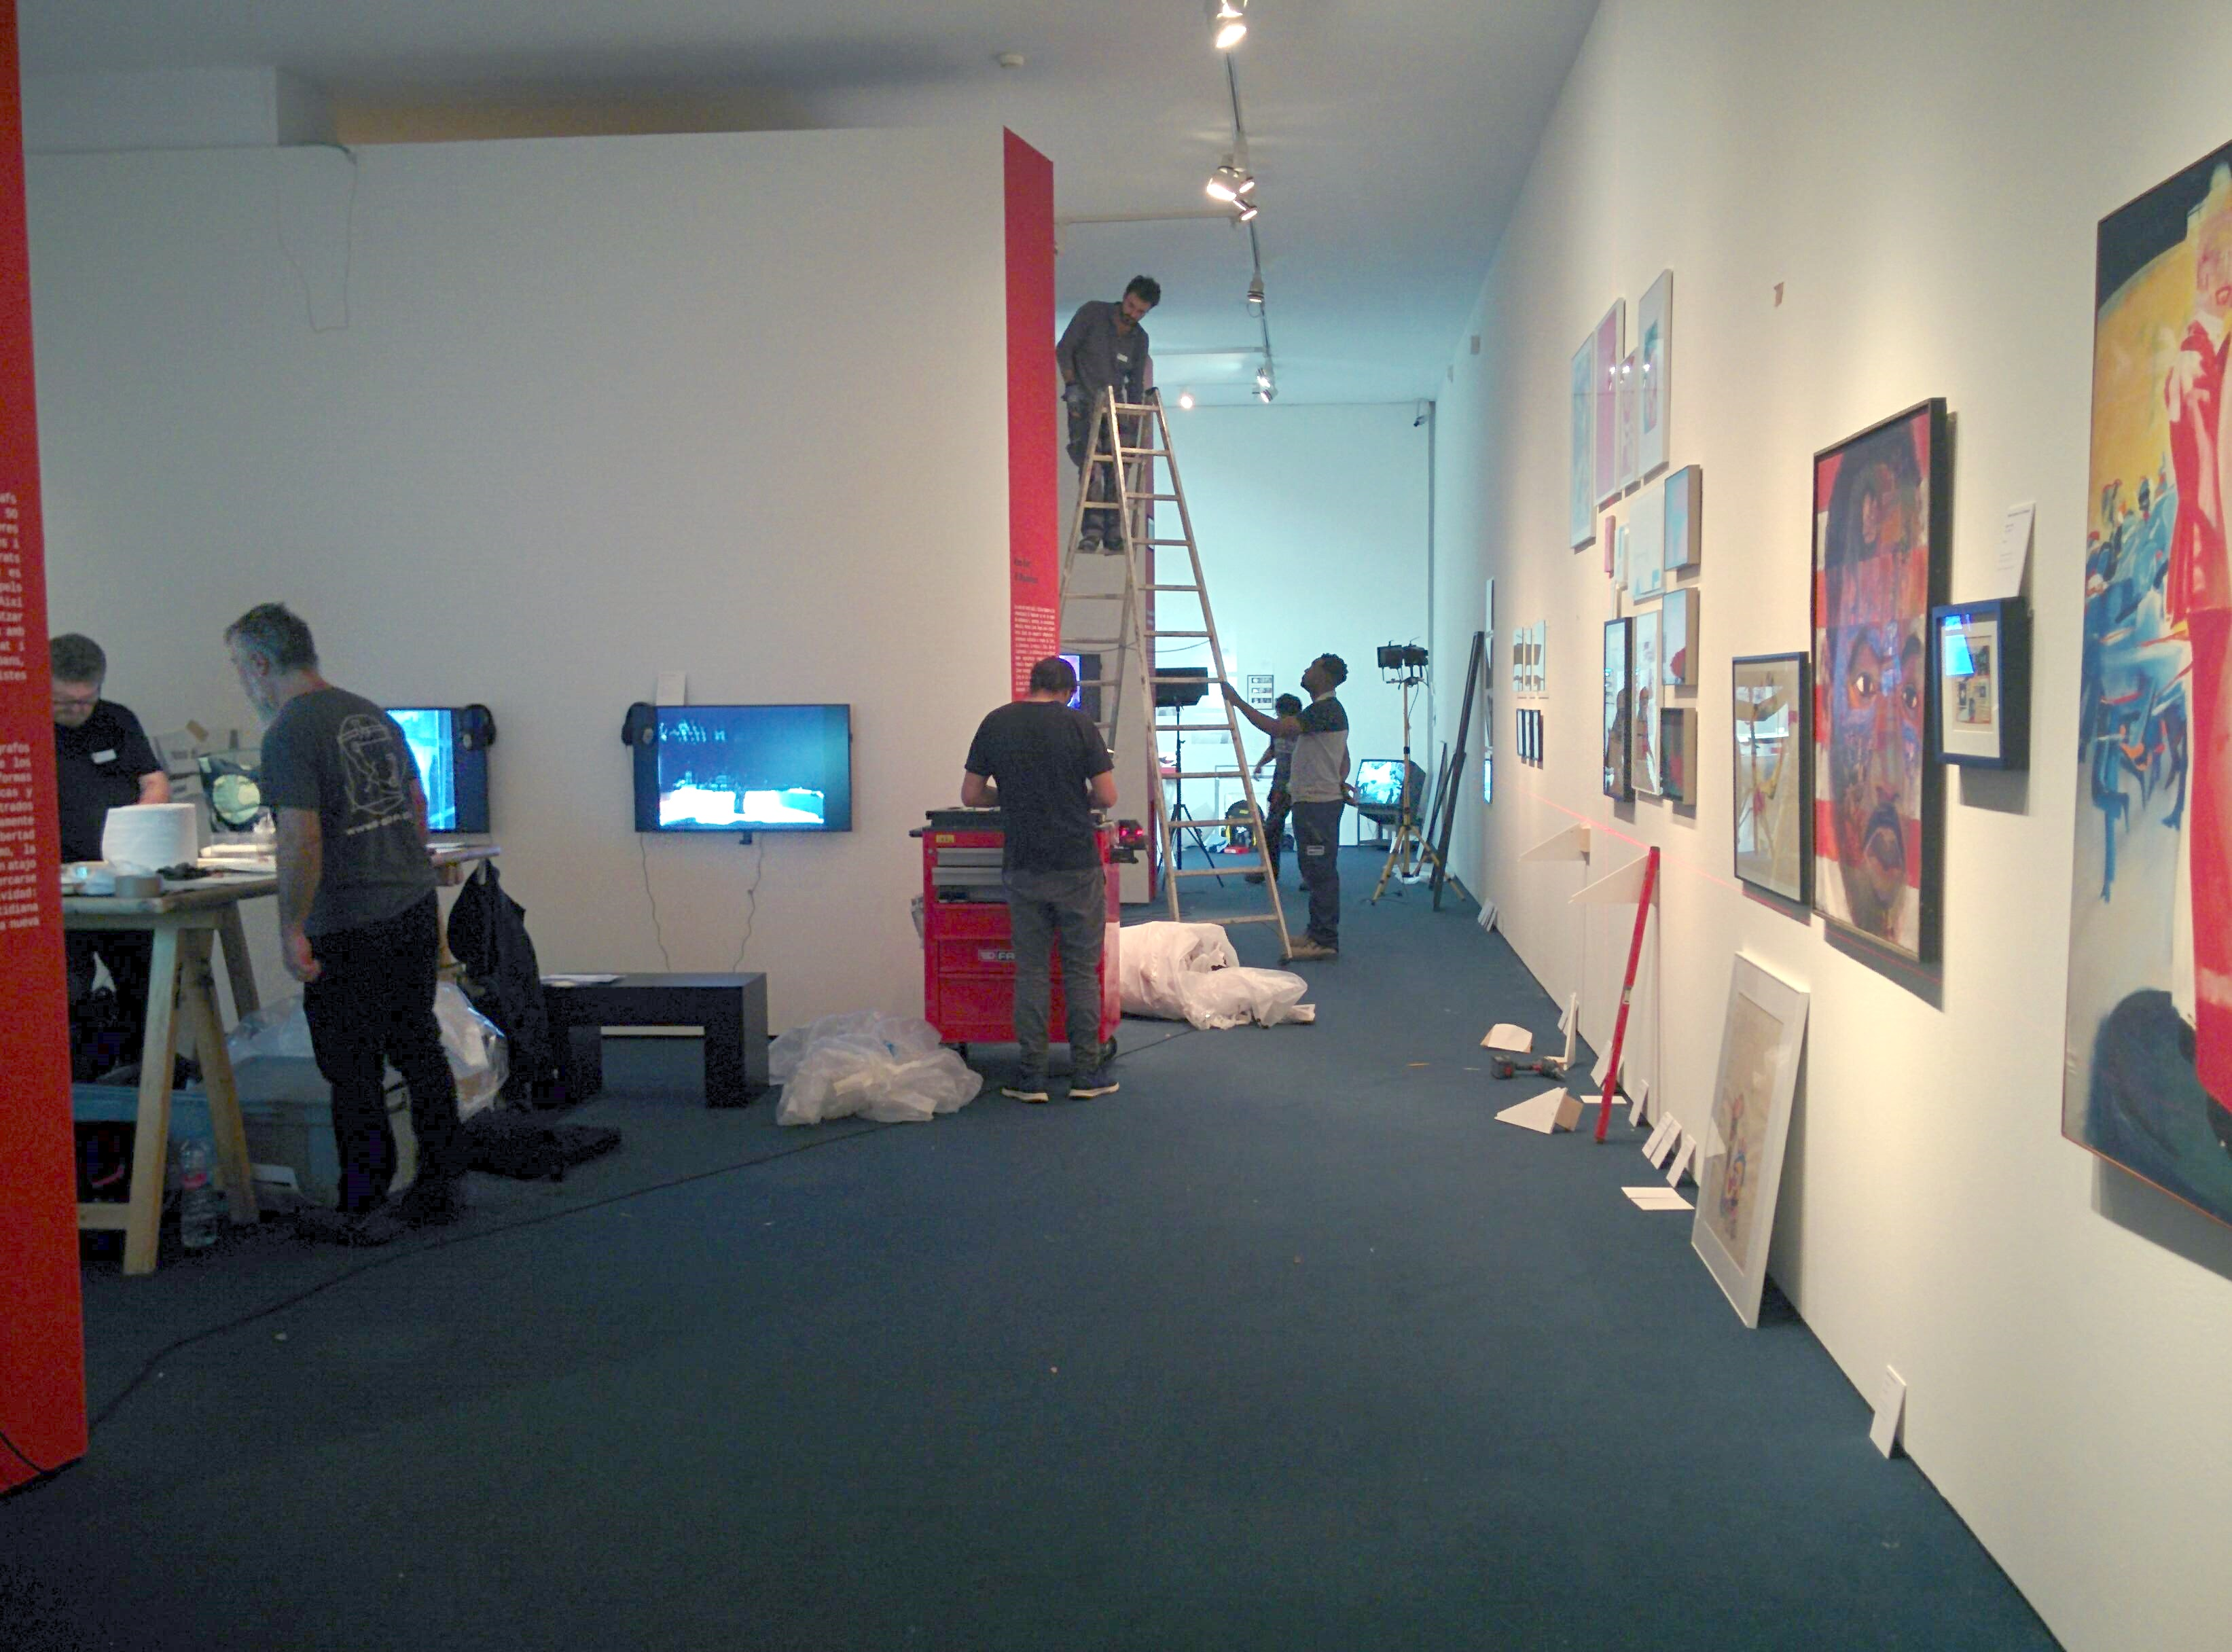 Assembling the exhibition. Photo: Milena Pi